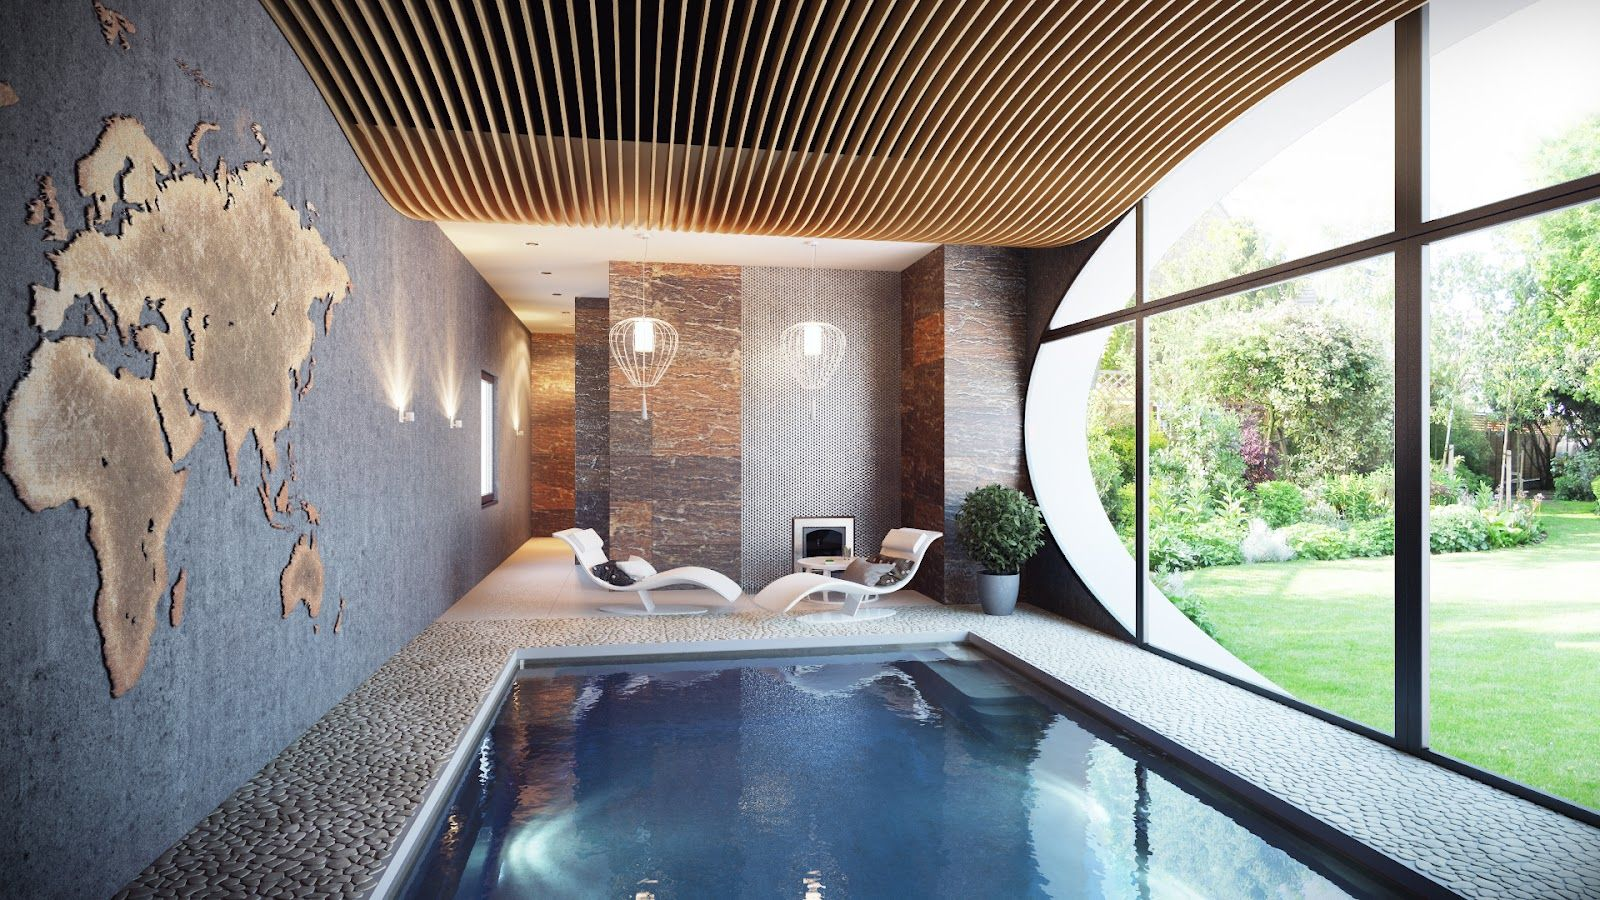 Indoor Swimming Pool Indoor Swimming Pool Design Small Indoor Pool Indoor Pool Design